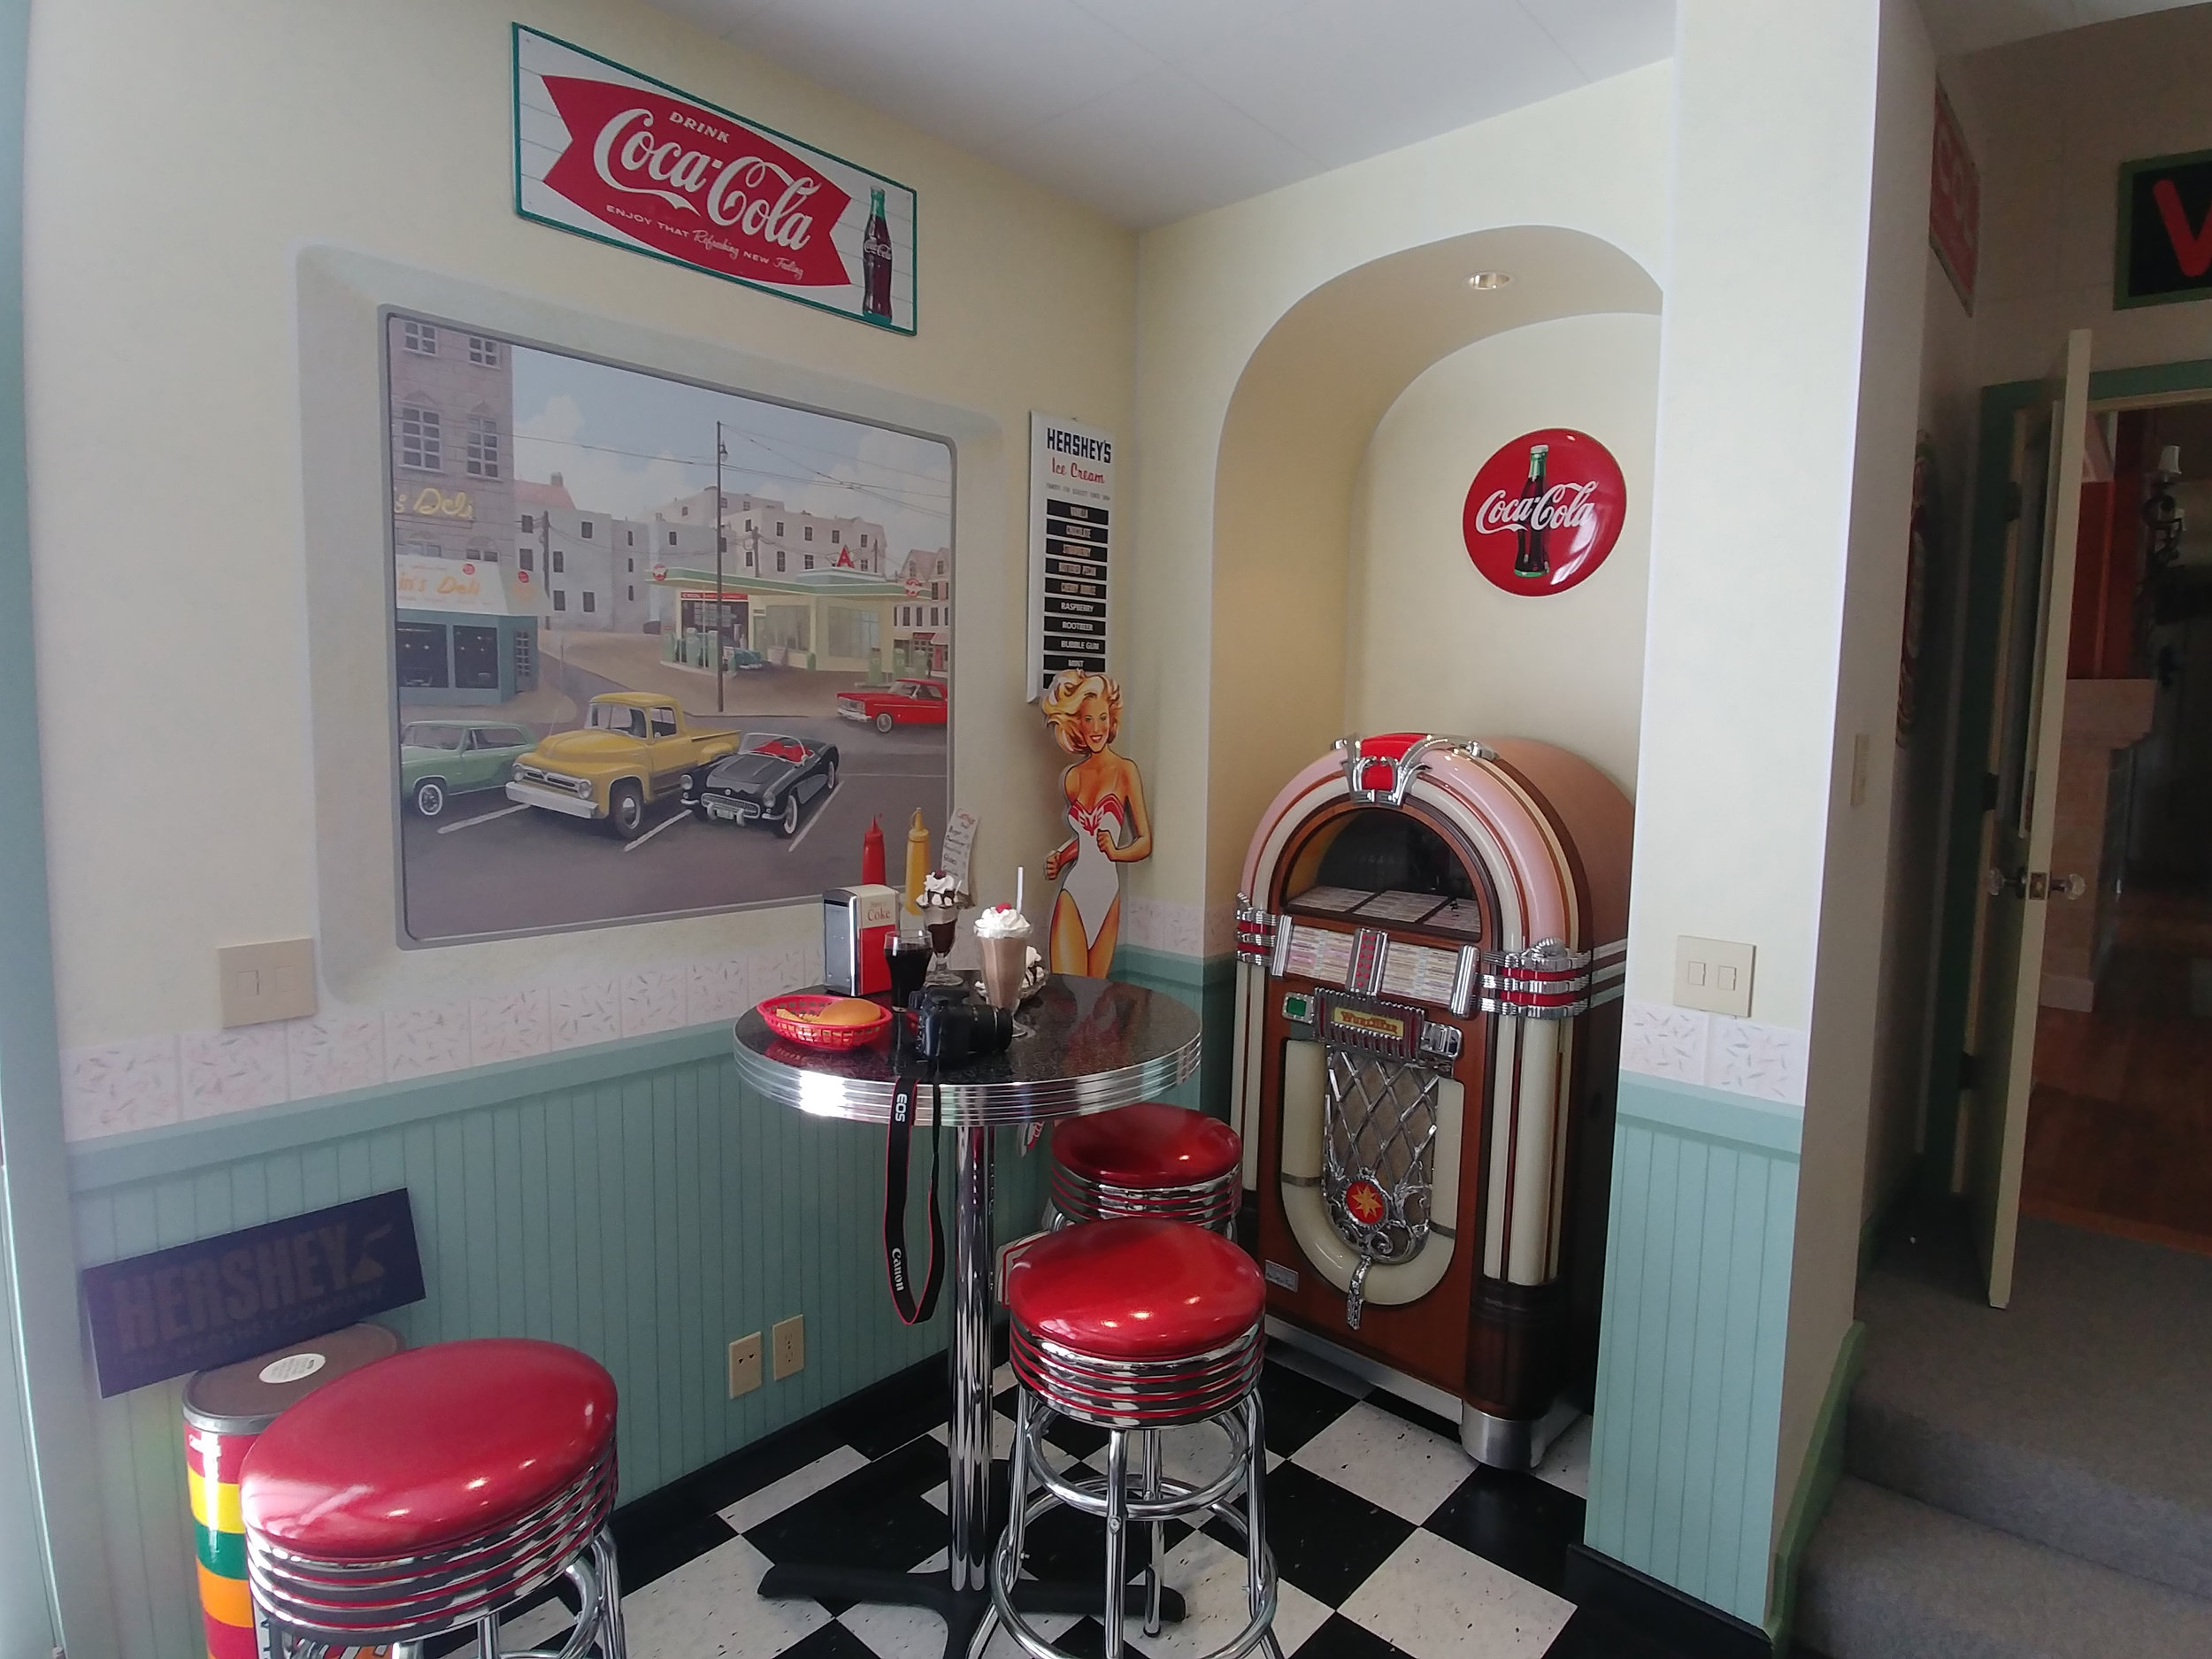 This little diner has many hand painted touches including the window mural, tile and wainscoting.